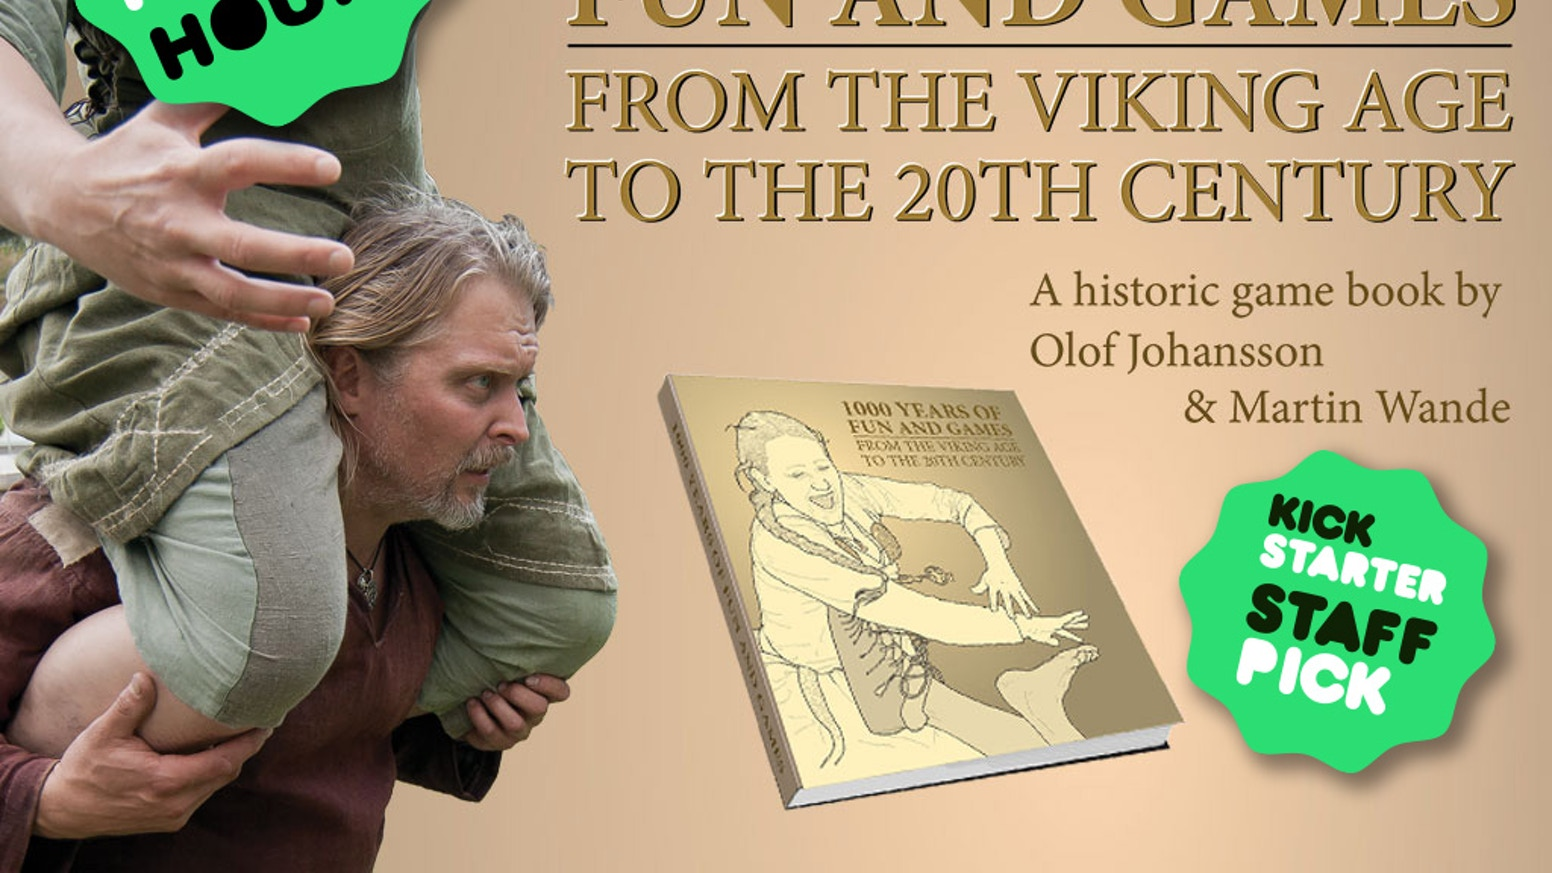 An illustrated historic book of games that go all the way back to the Viking age. Written by two Swedish and playful authors.